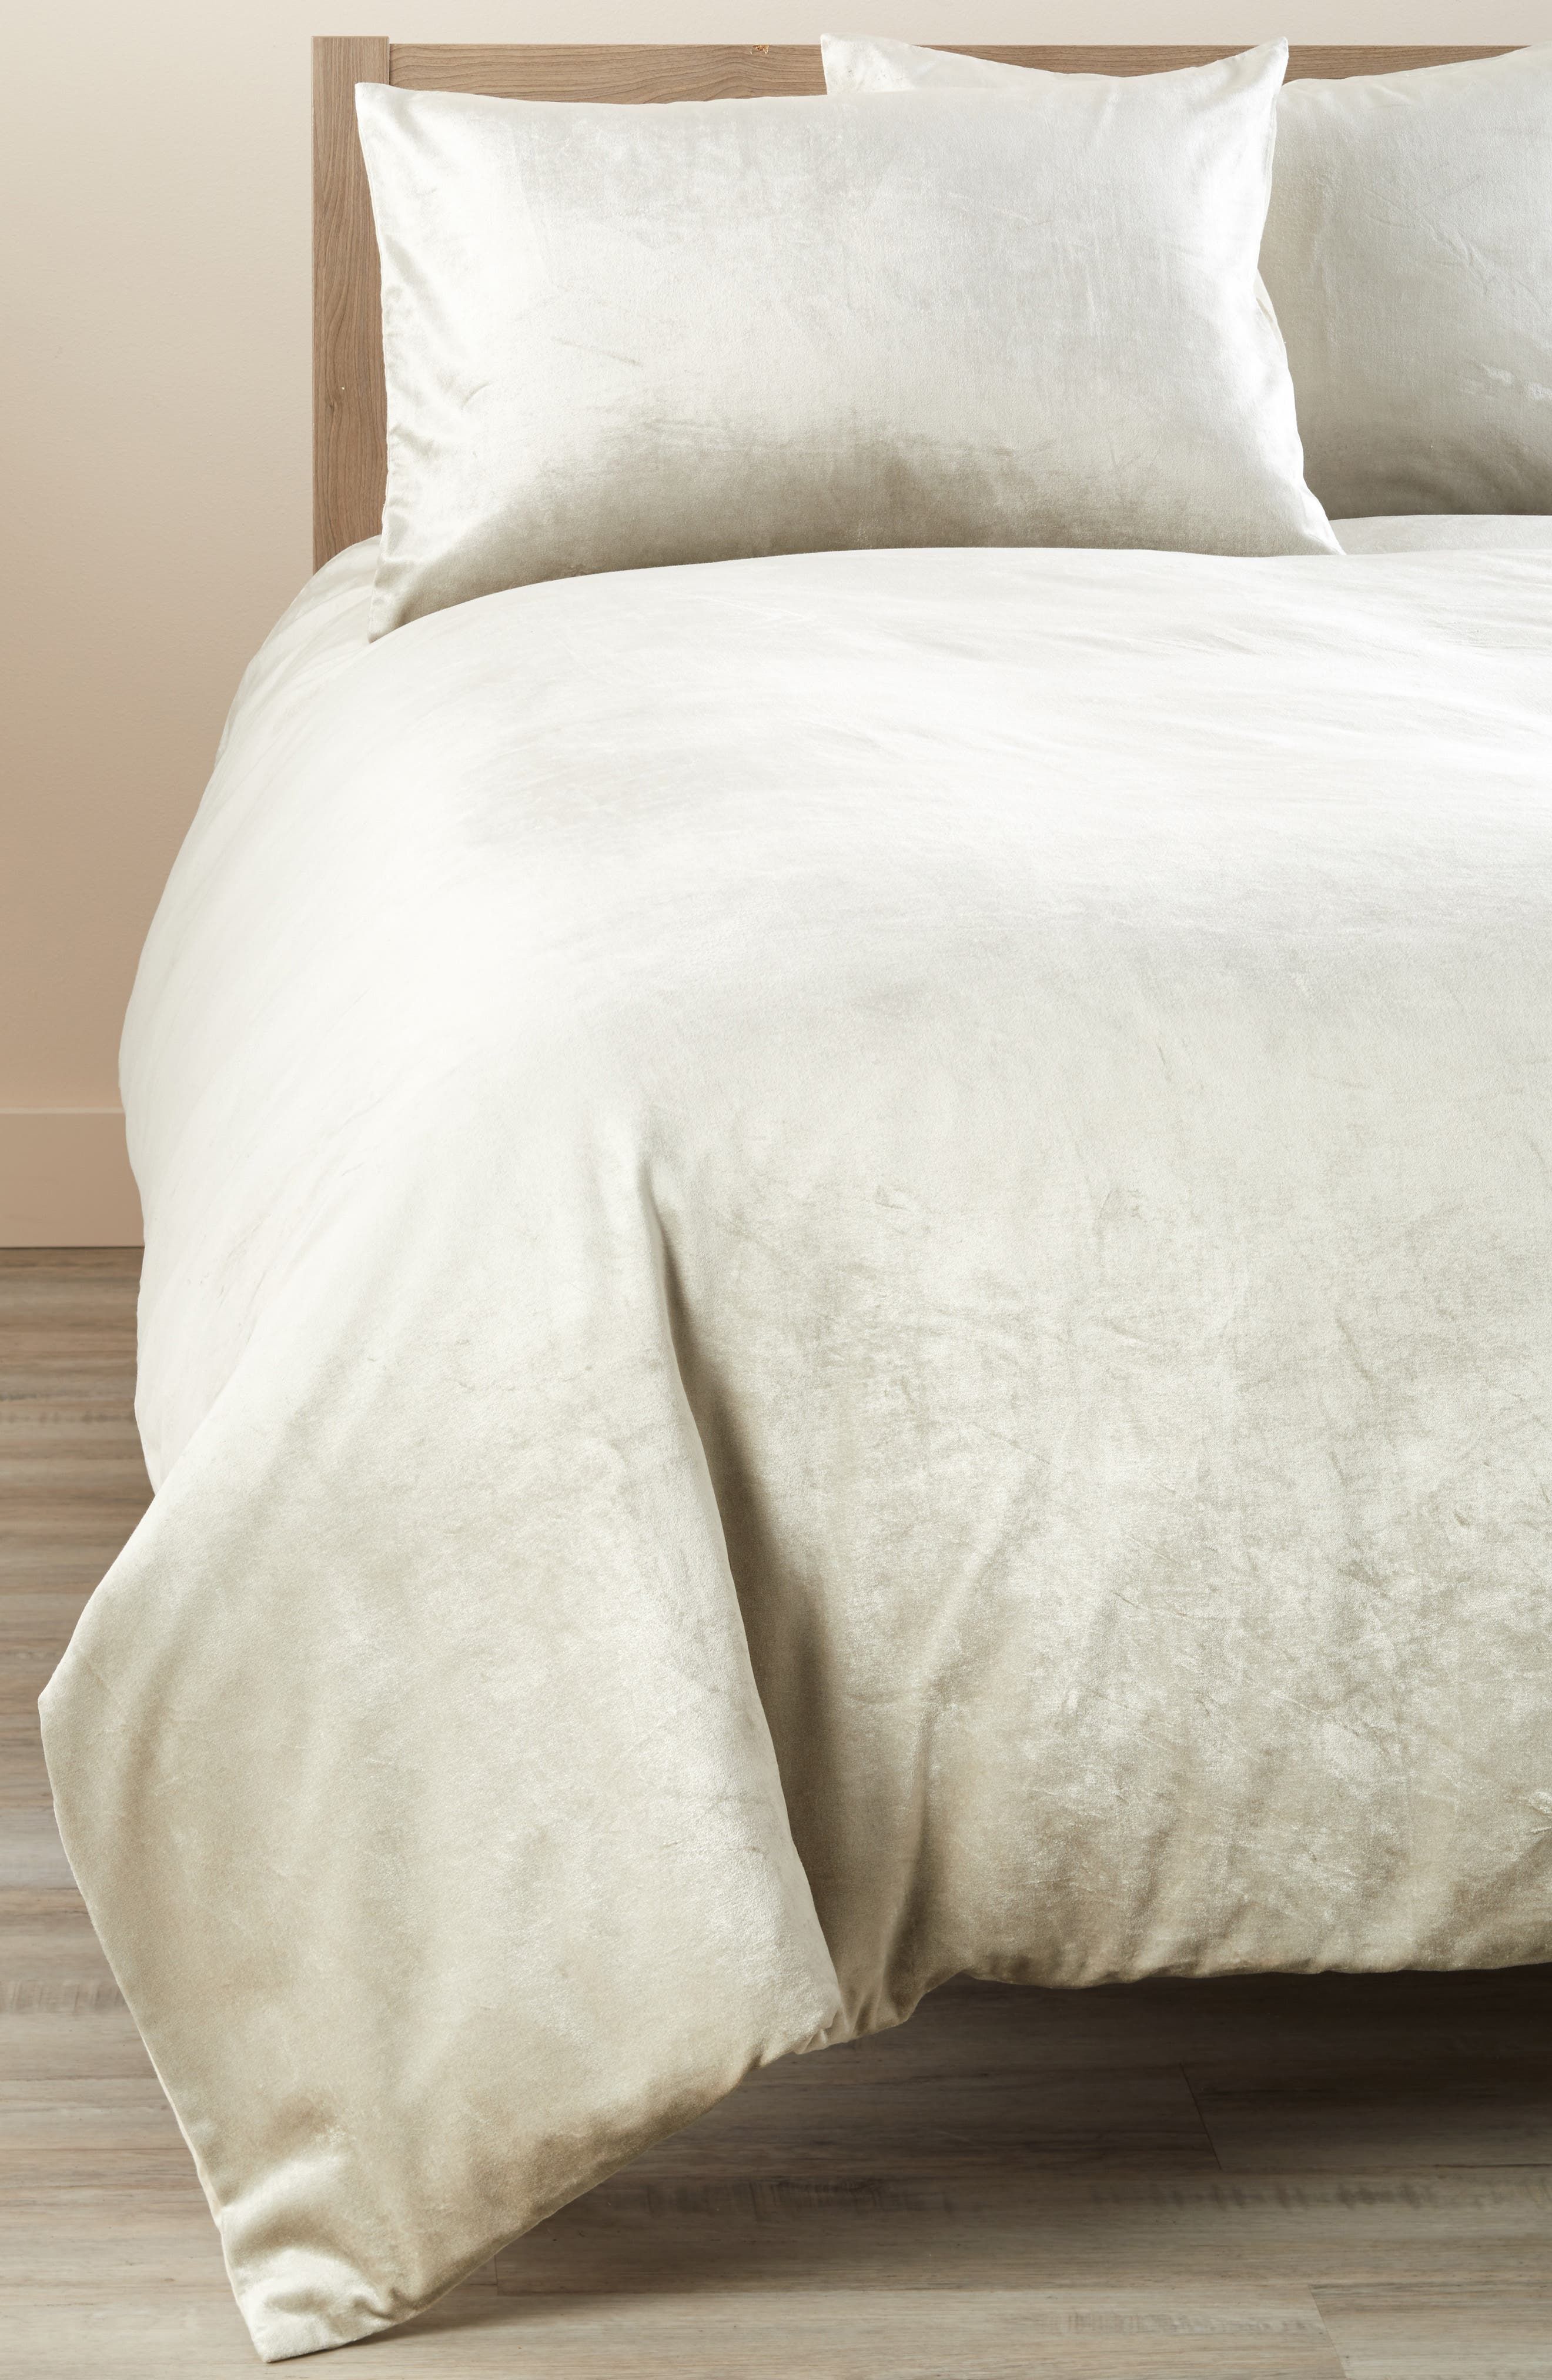 Nordstrom at Home Shimmer Velvet Duvet Cover